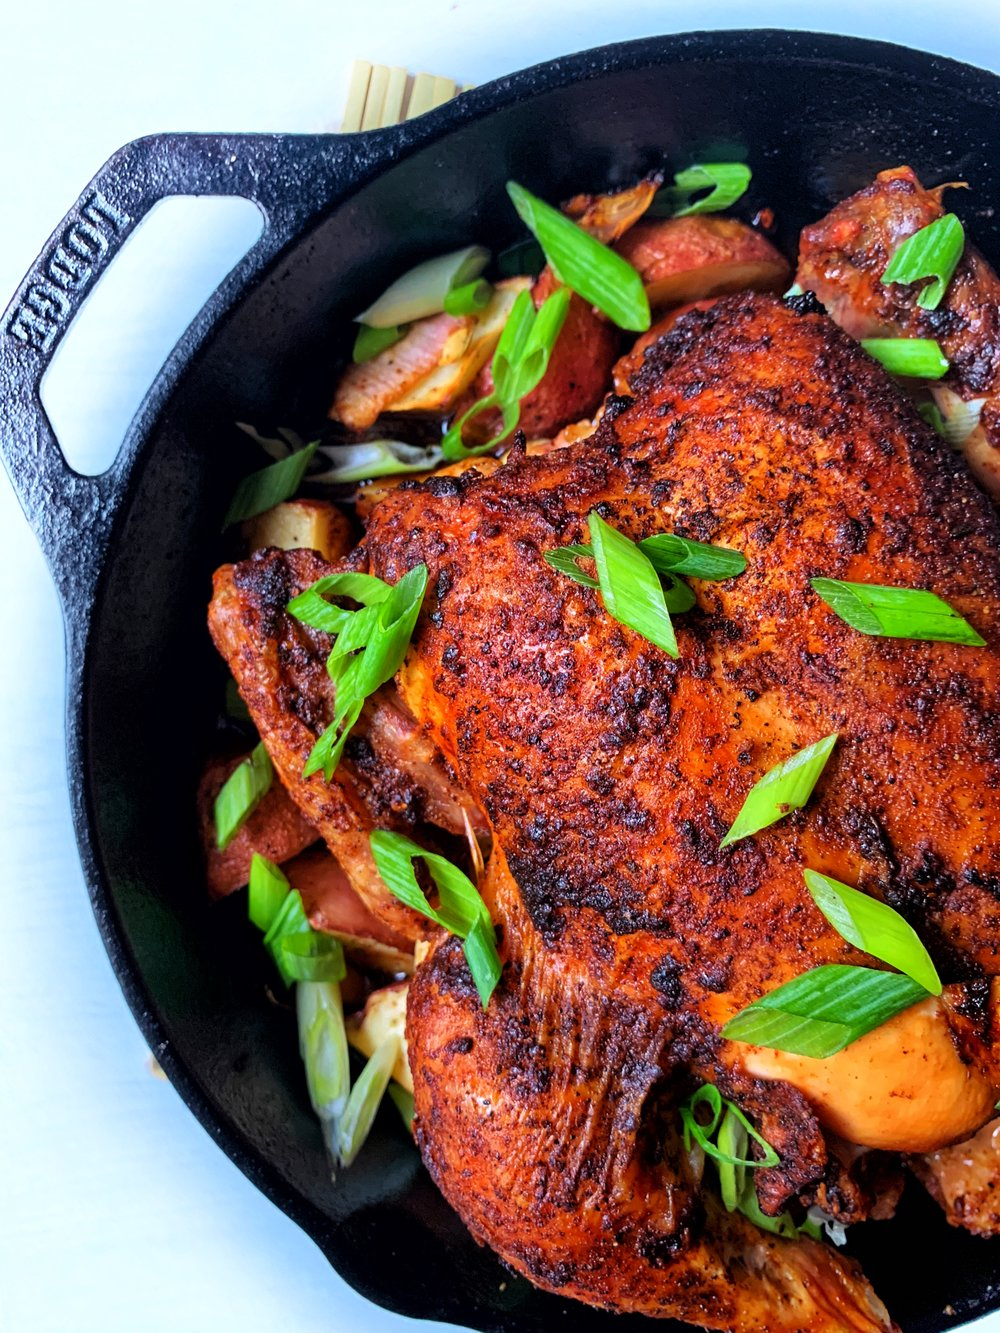 just add a simple salad or some nice bread to accompany your beautiful harissa roast chicken